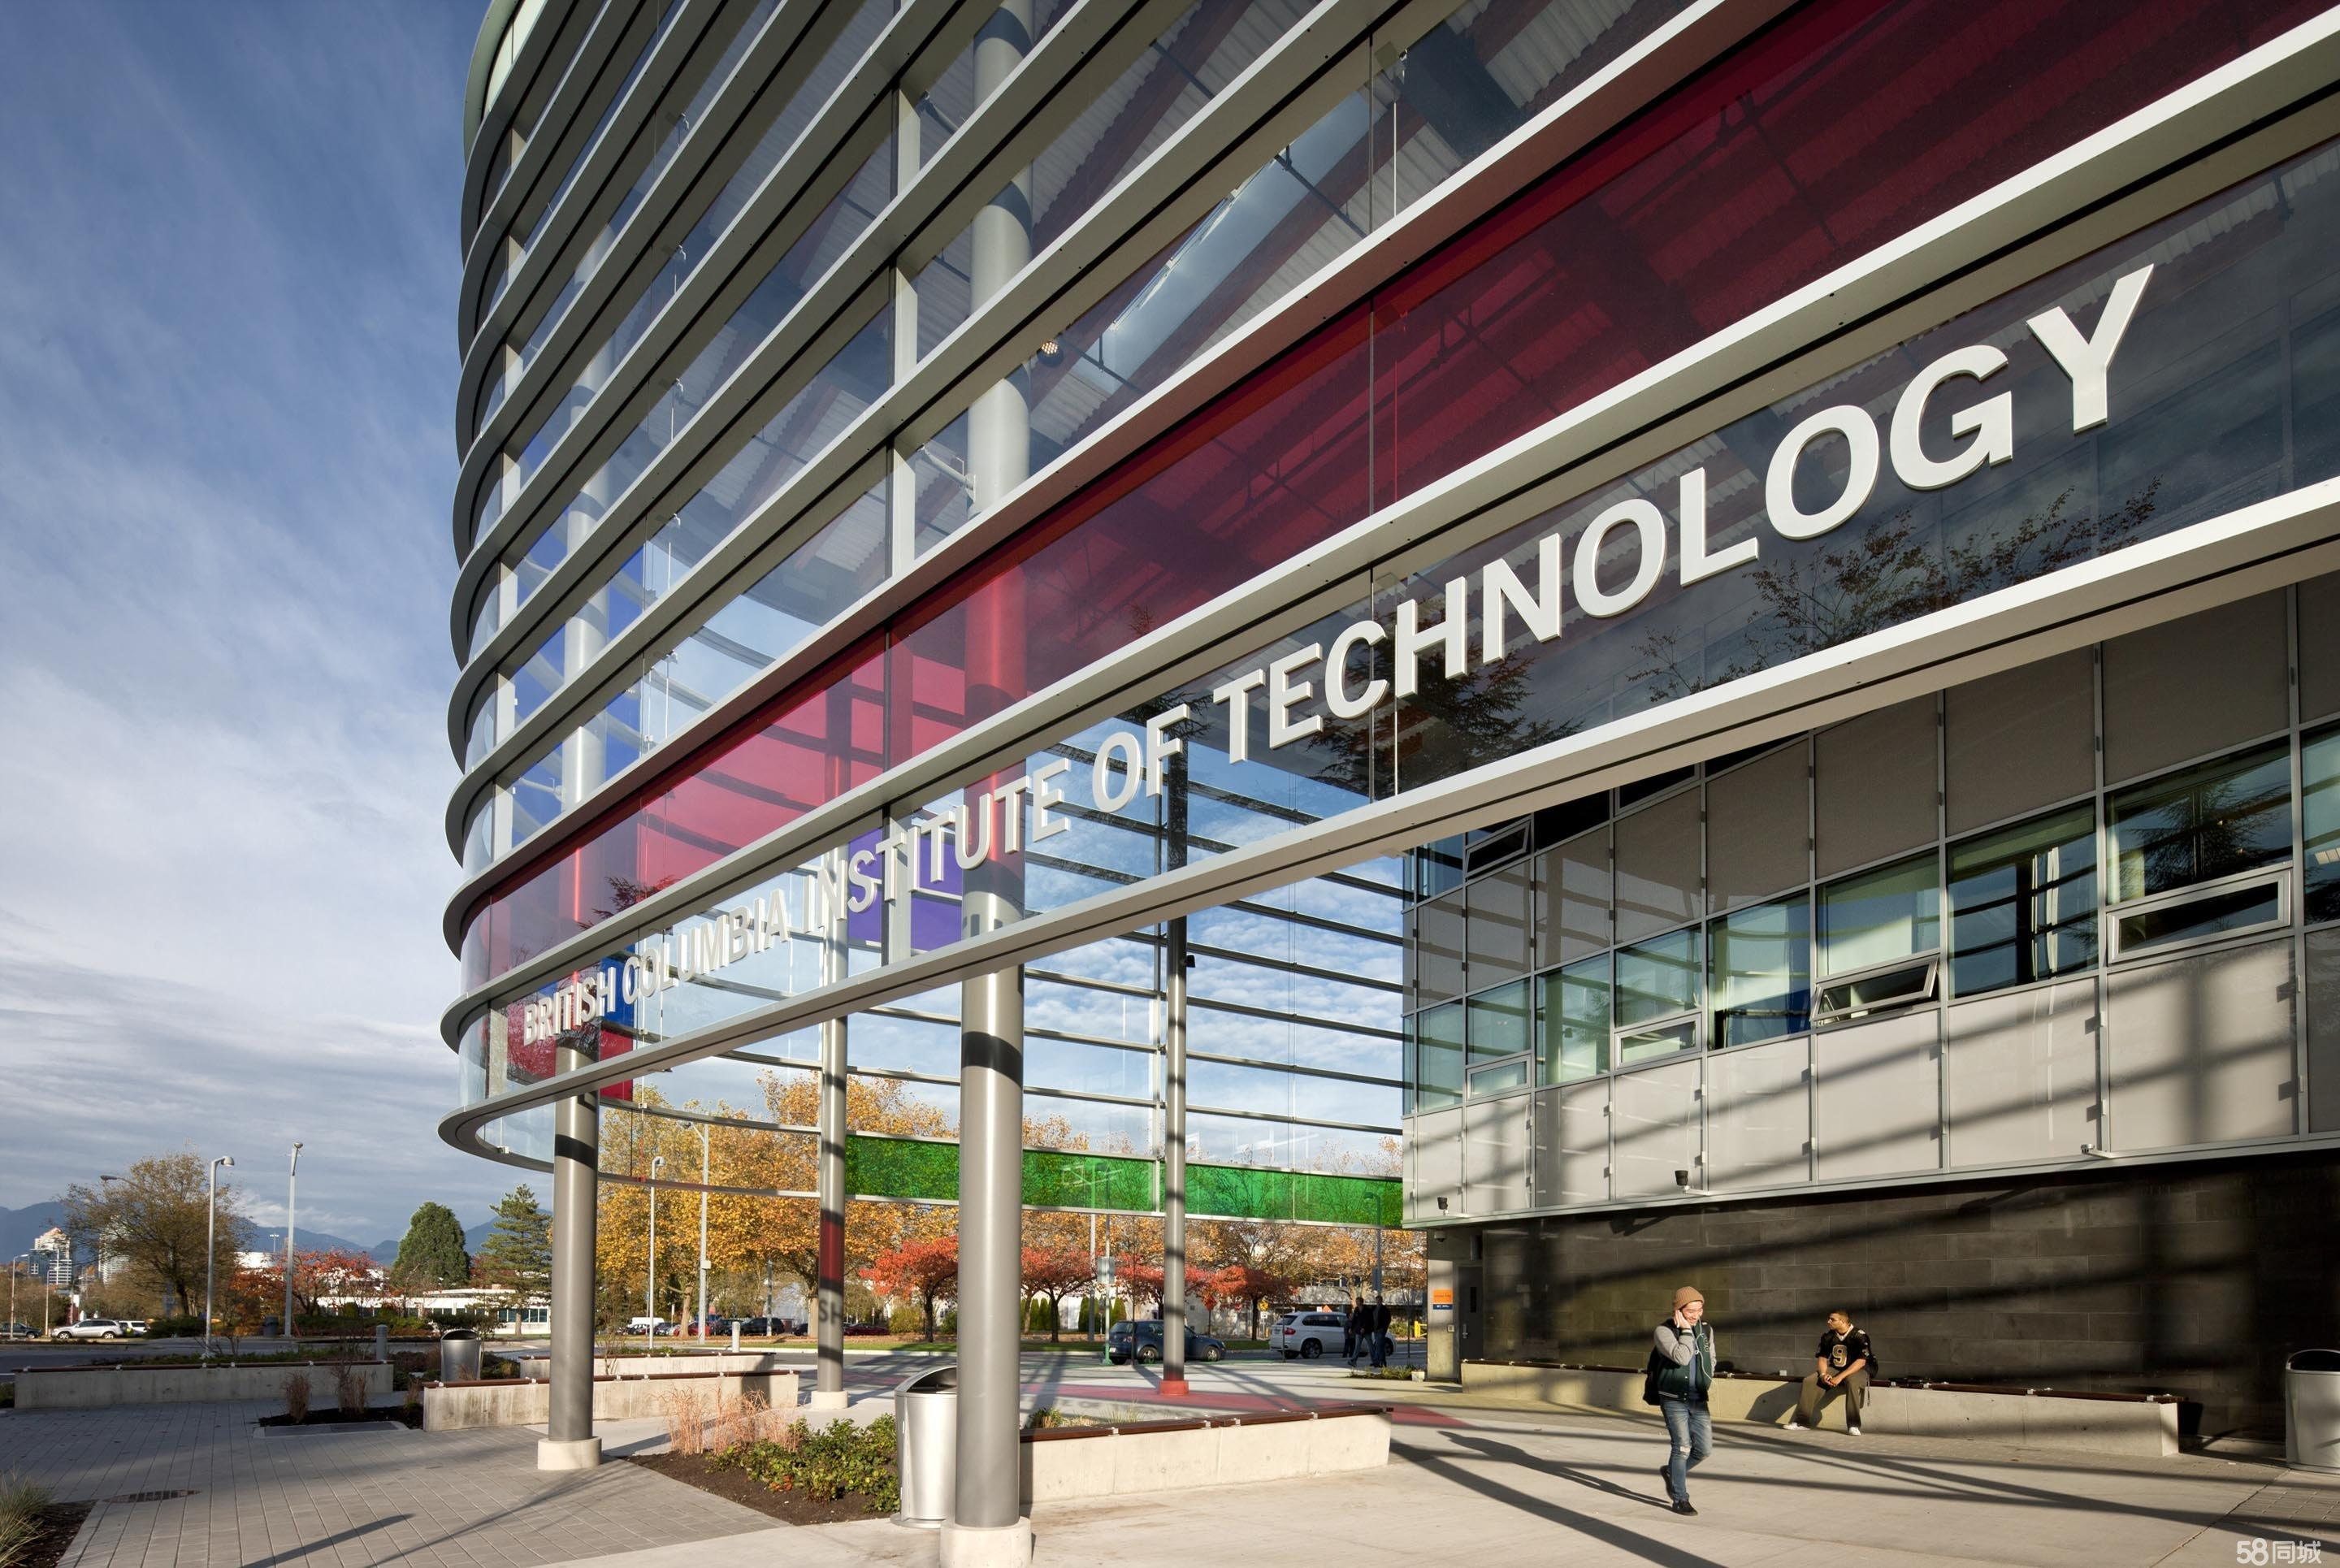 British Columbia Institute of Technology (1)